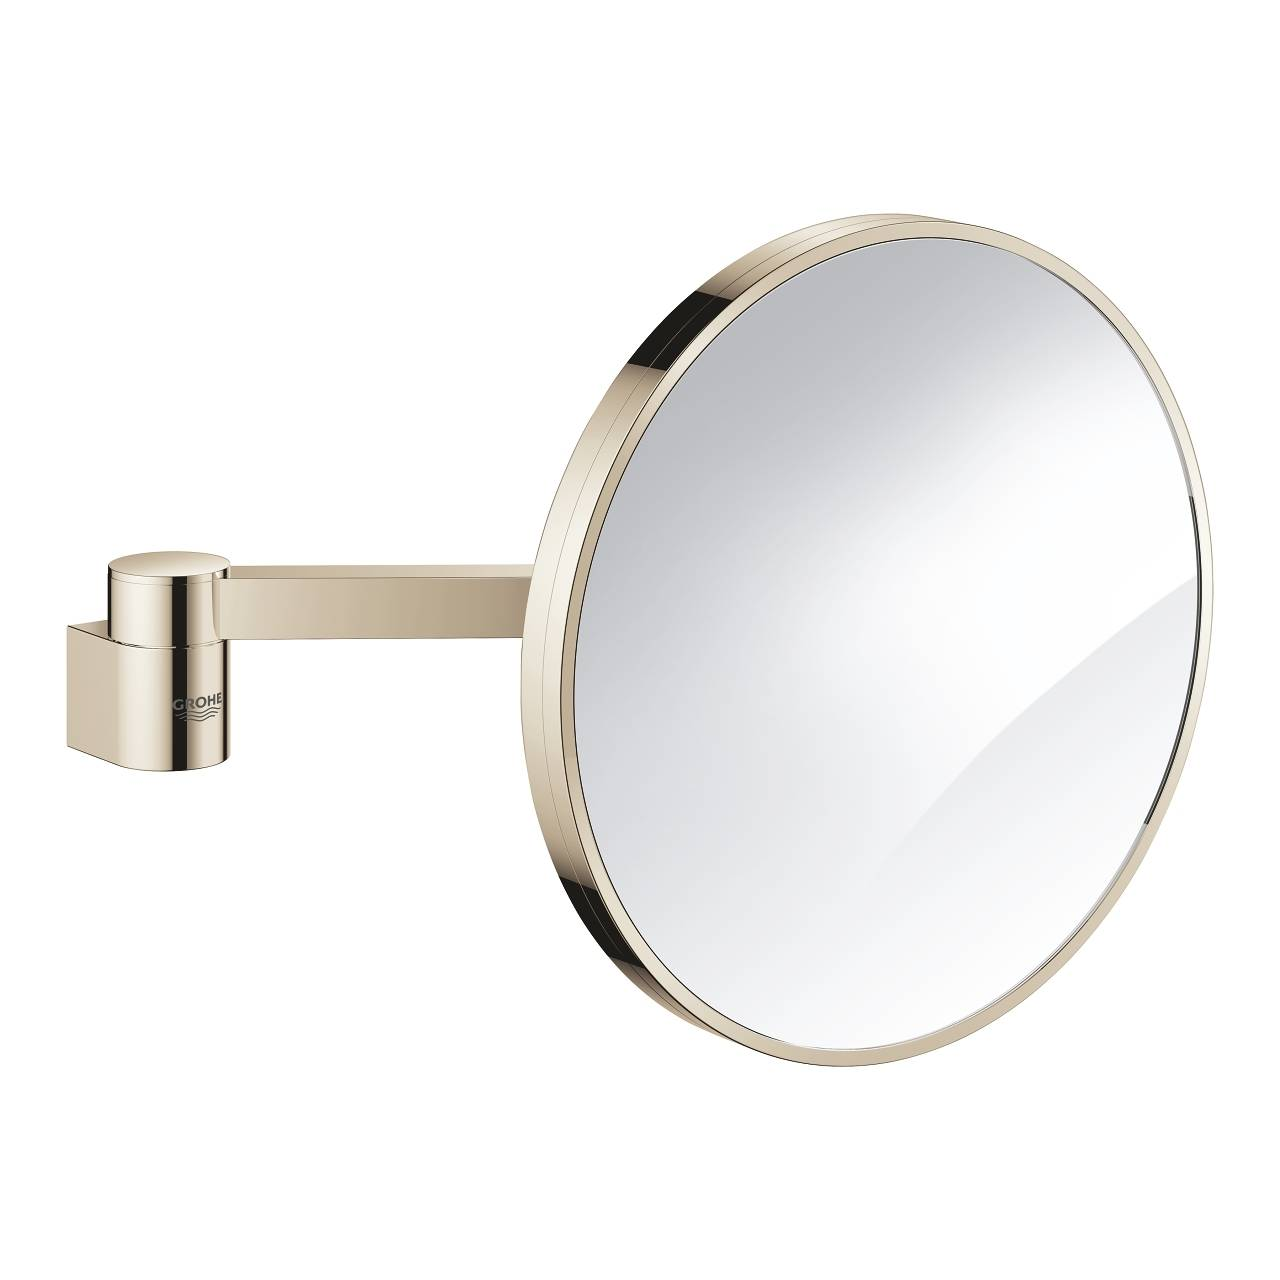 Grohe Selection - Miroir cosmétique mirrored / nickel